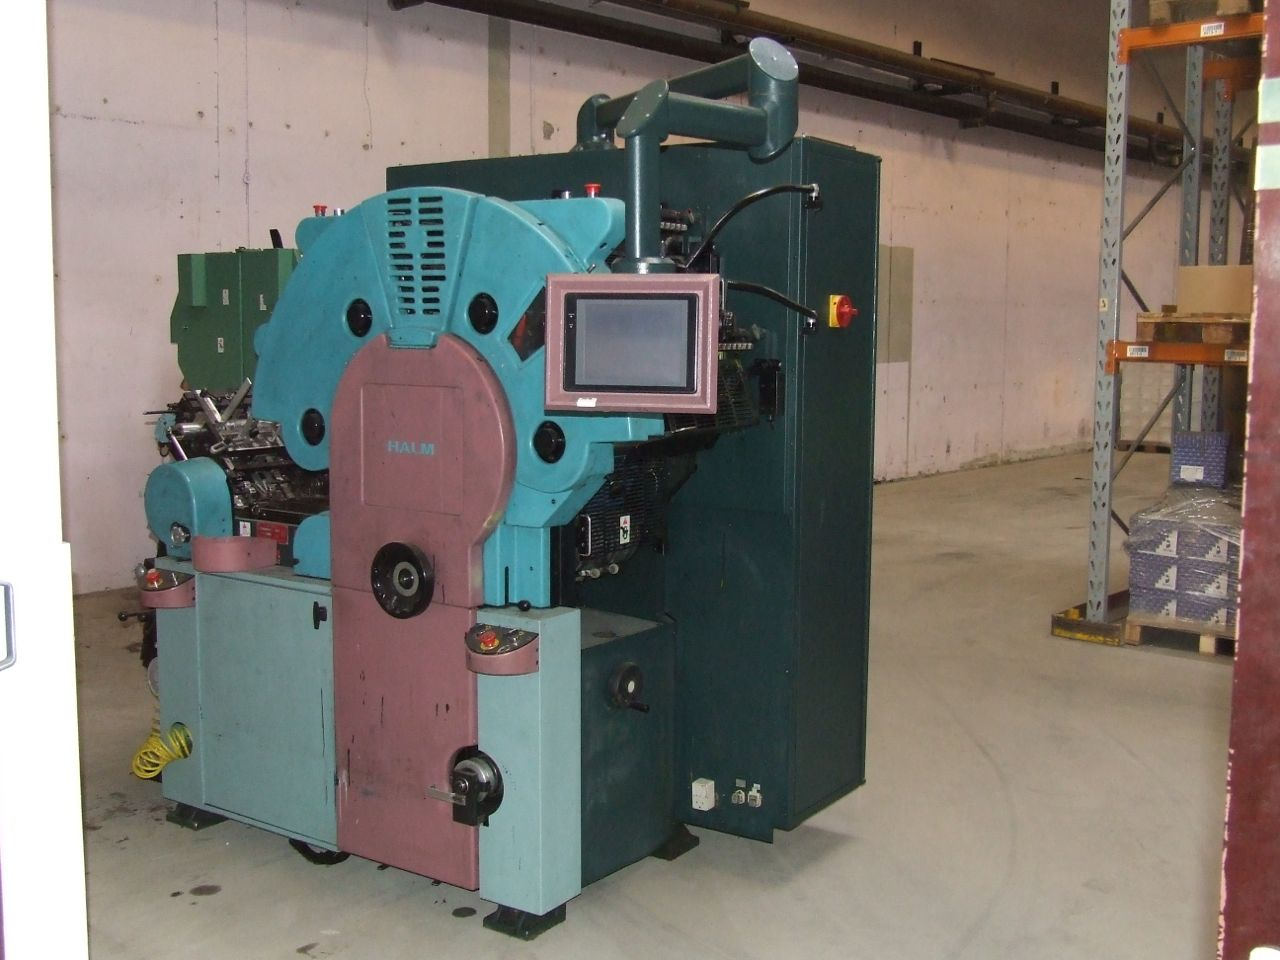 2000 Halm 4 color em4000 wide model machine sn 6142 AS IS EXC cond